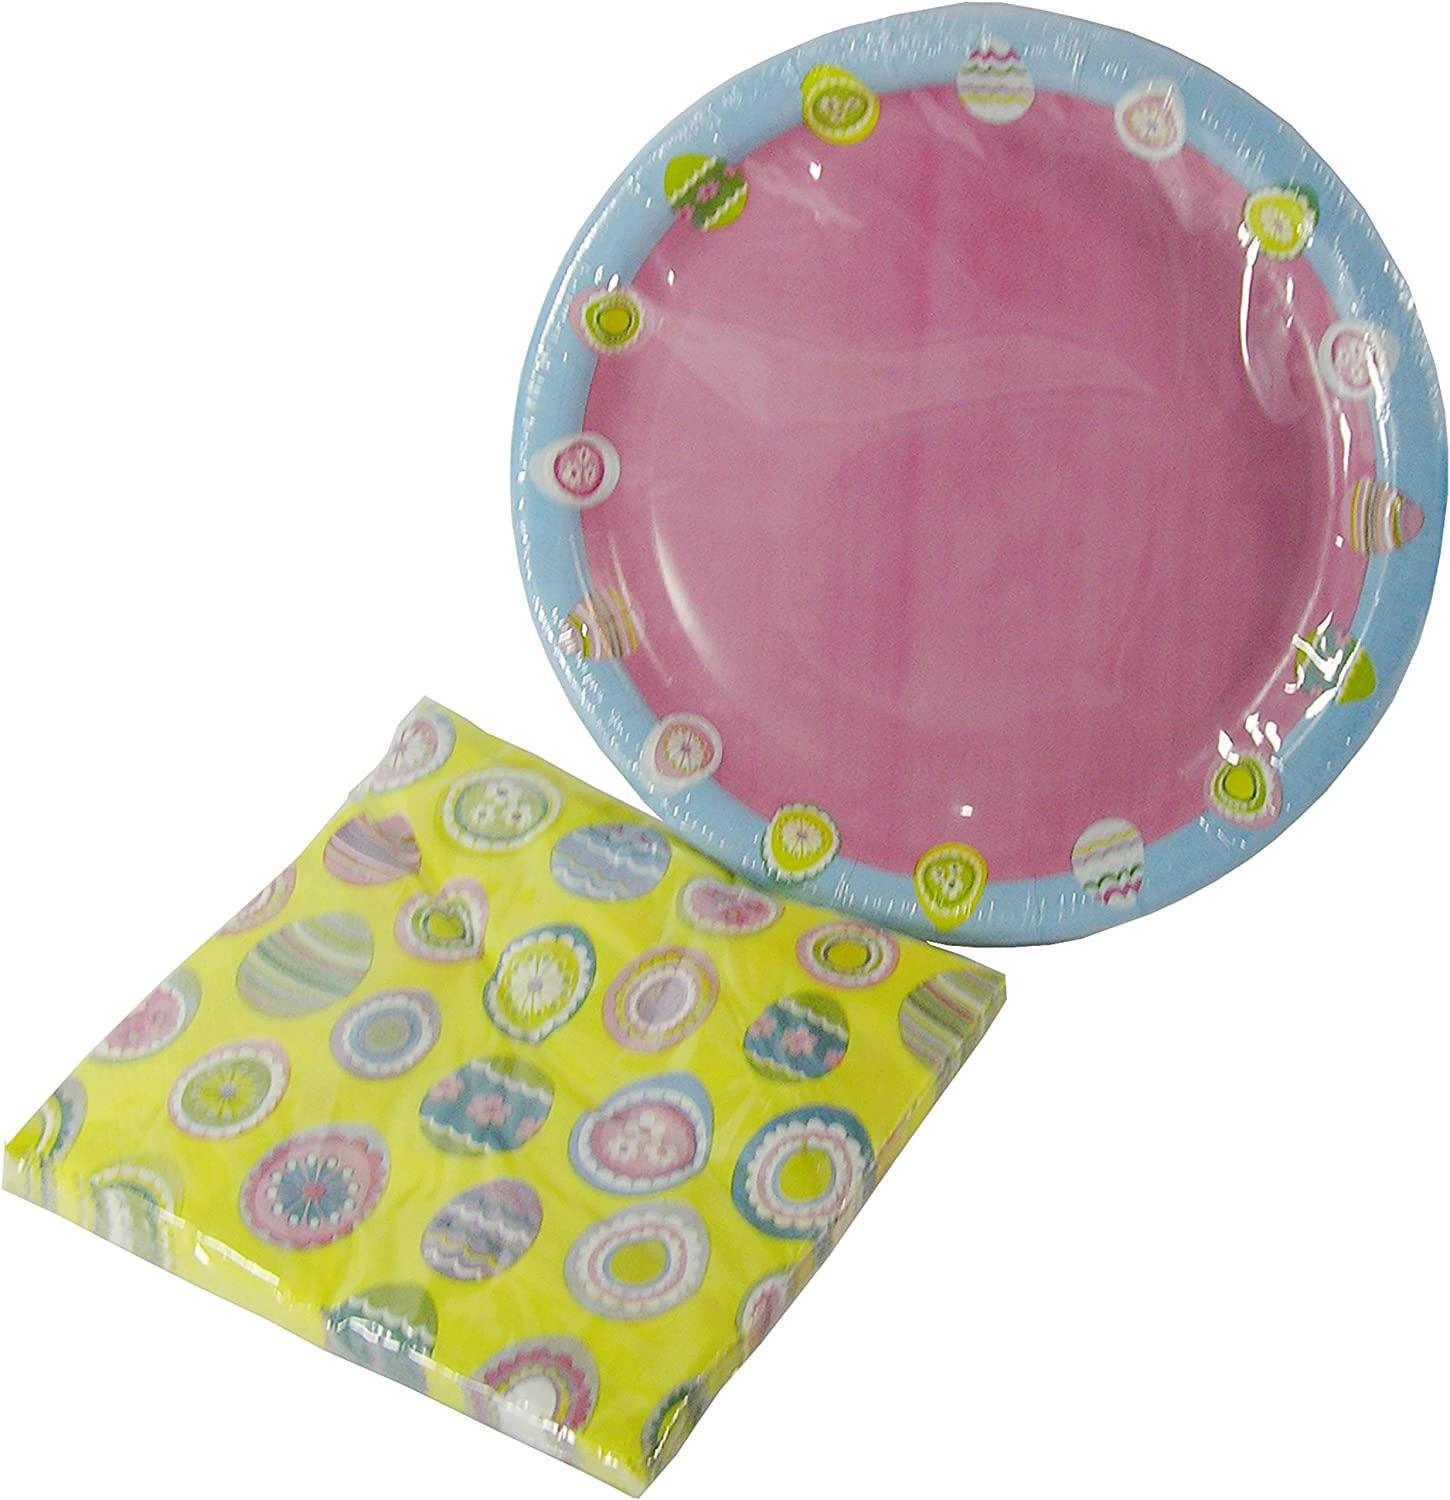 Easter Pink Yellow & Pastel bluee Decorated Easter Egg Paper Plates & Napkins Set 36 Pieces